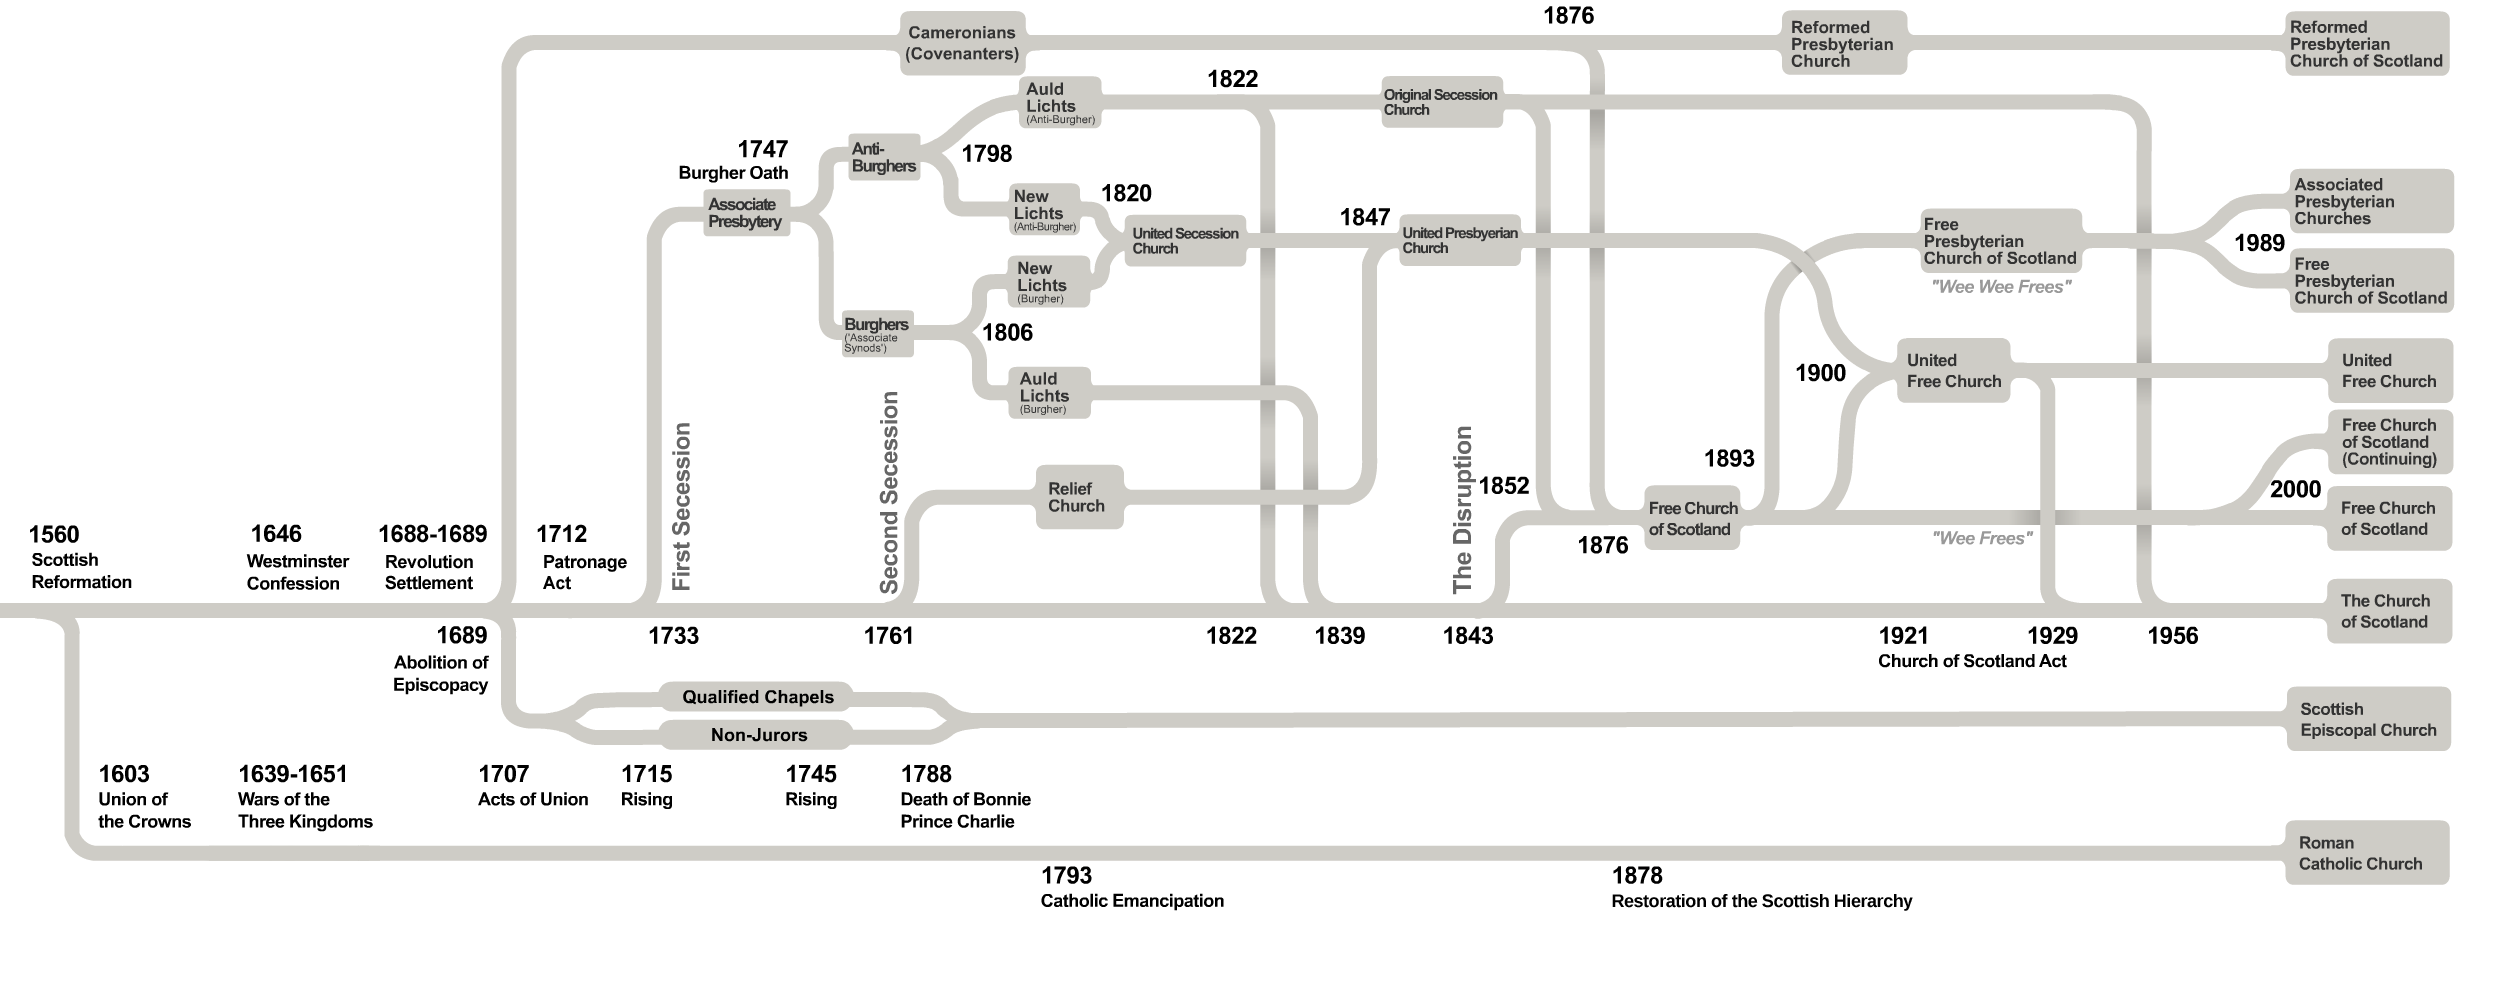 File:Churches of Scotland timeline.png - Wikimedia Commons